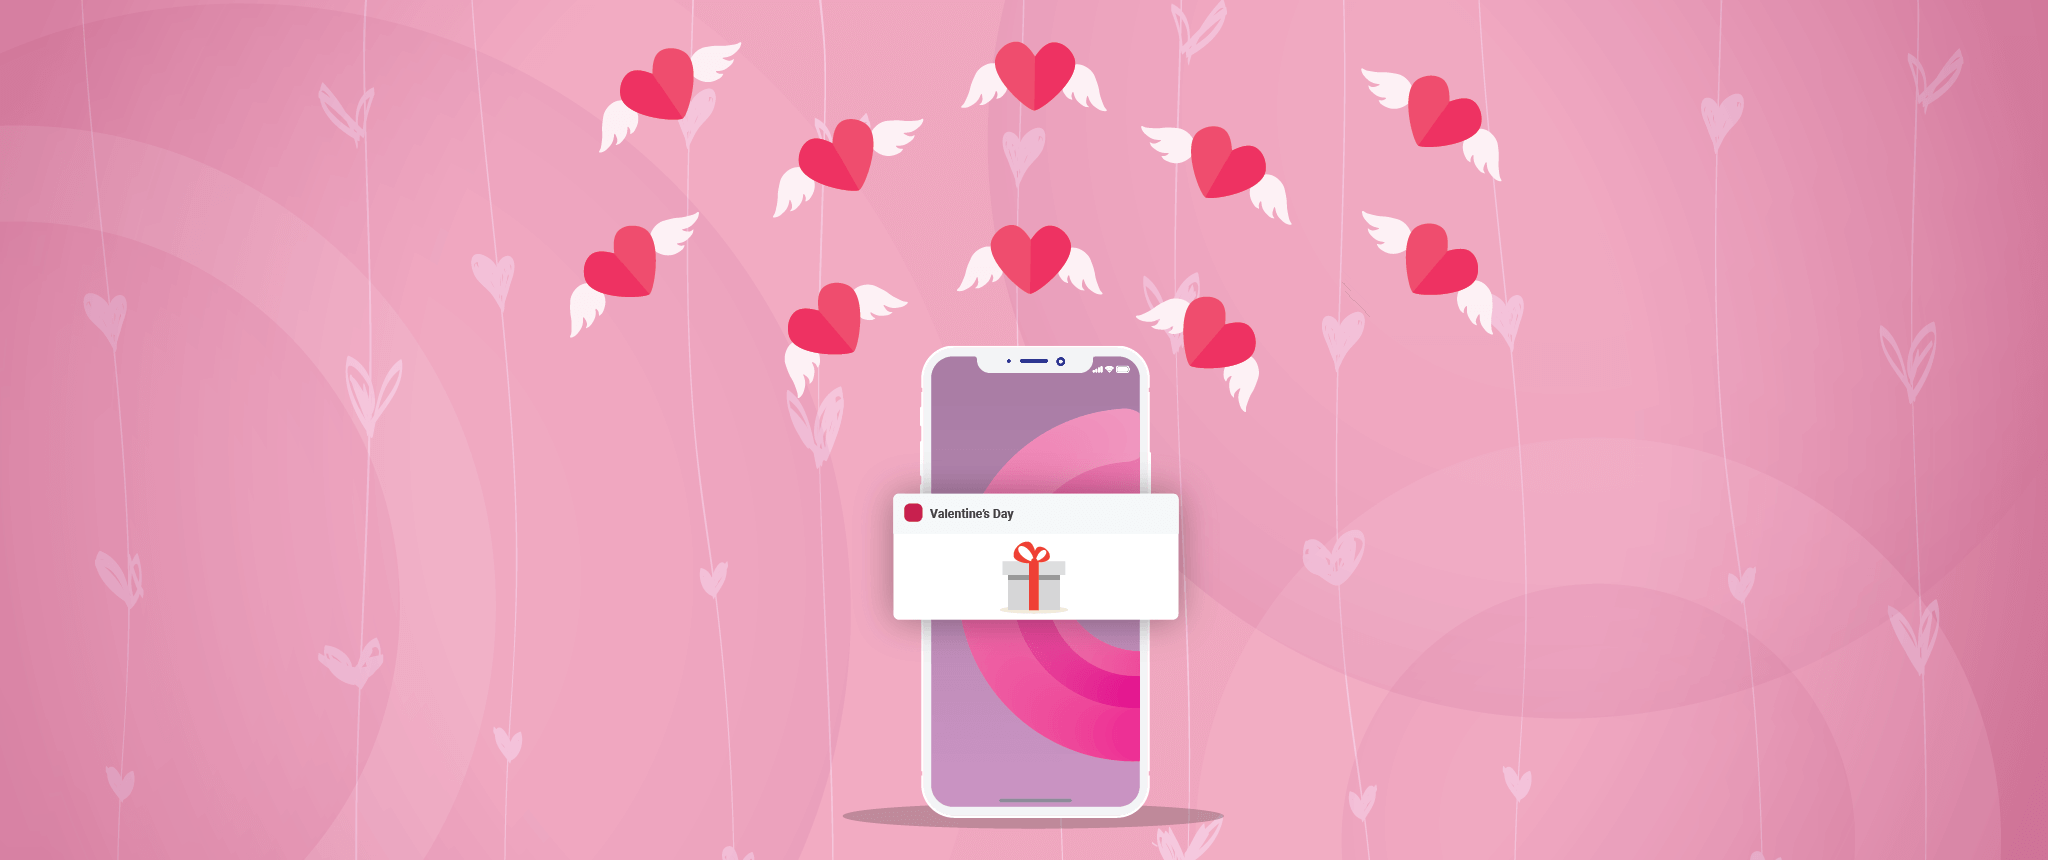 Love is in the Air: 8 Push Notification Campaigns for Valentines